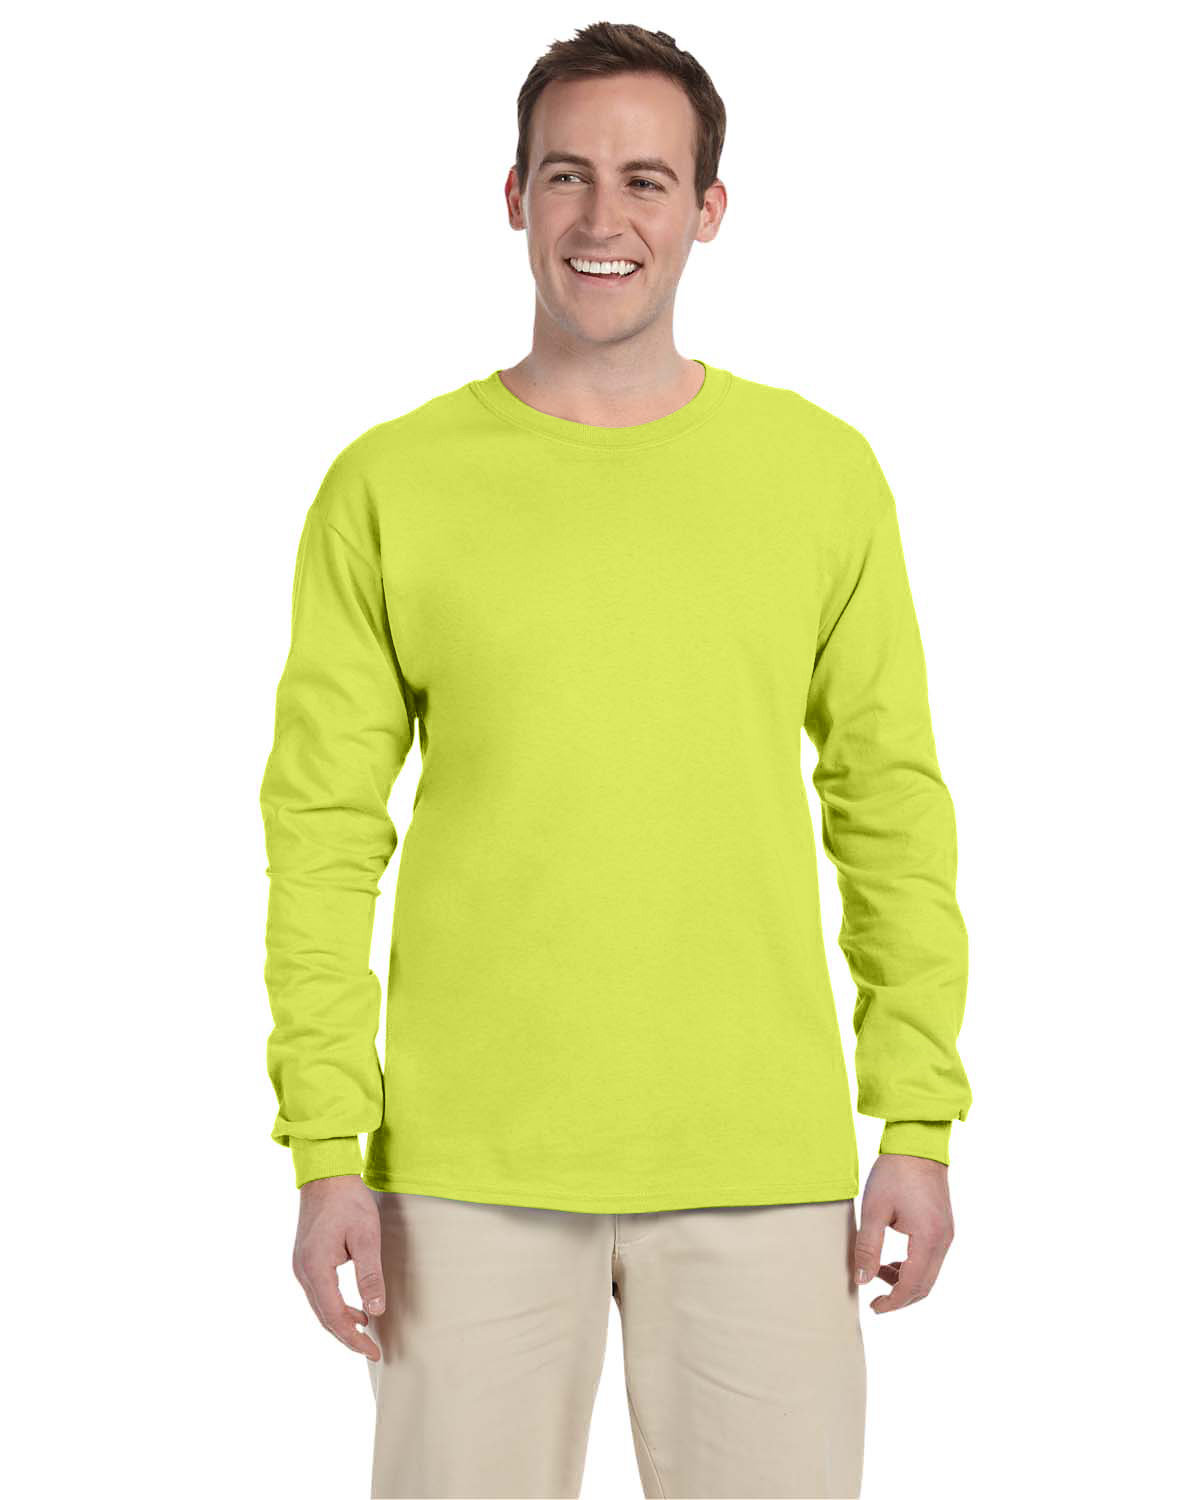 Fruit of the Loom Adult HD Cotton™ Long-Sleeve T-Shirt SAFETY GREEN